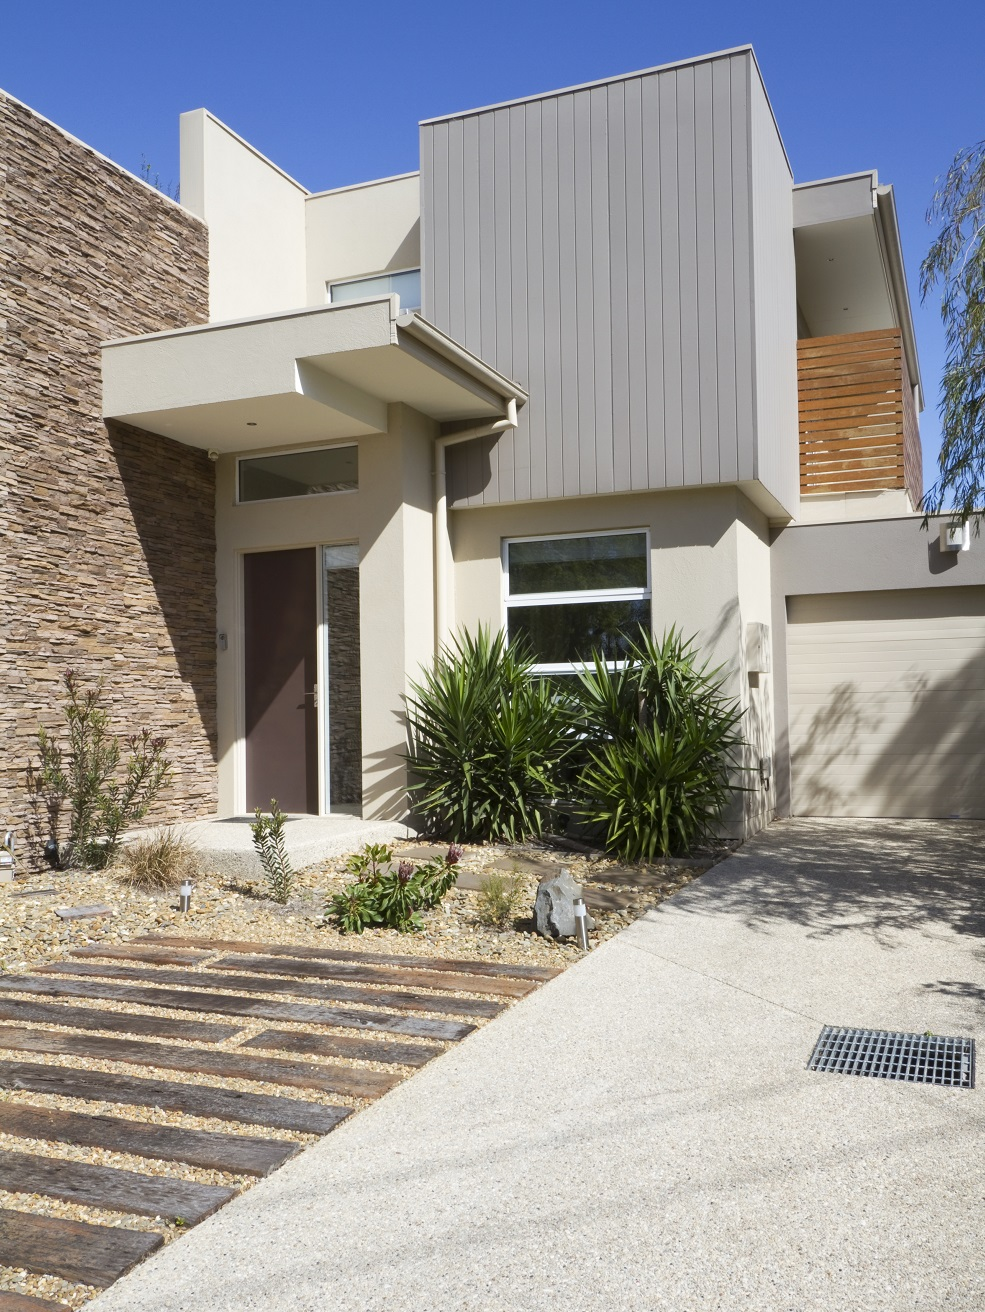 Exposed aggregate is great for driveways